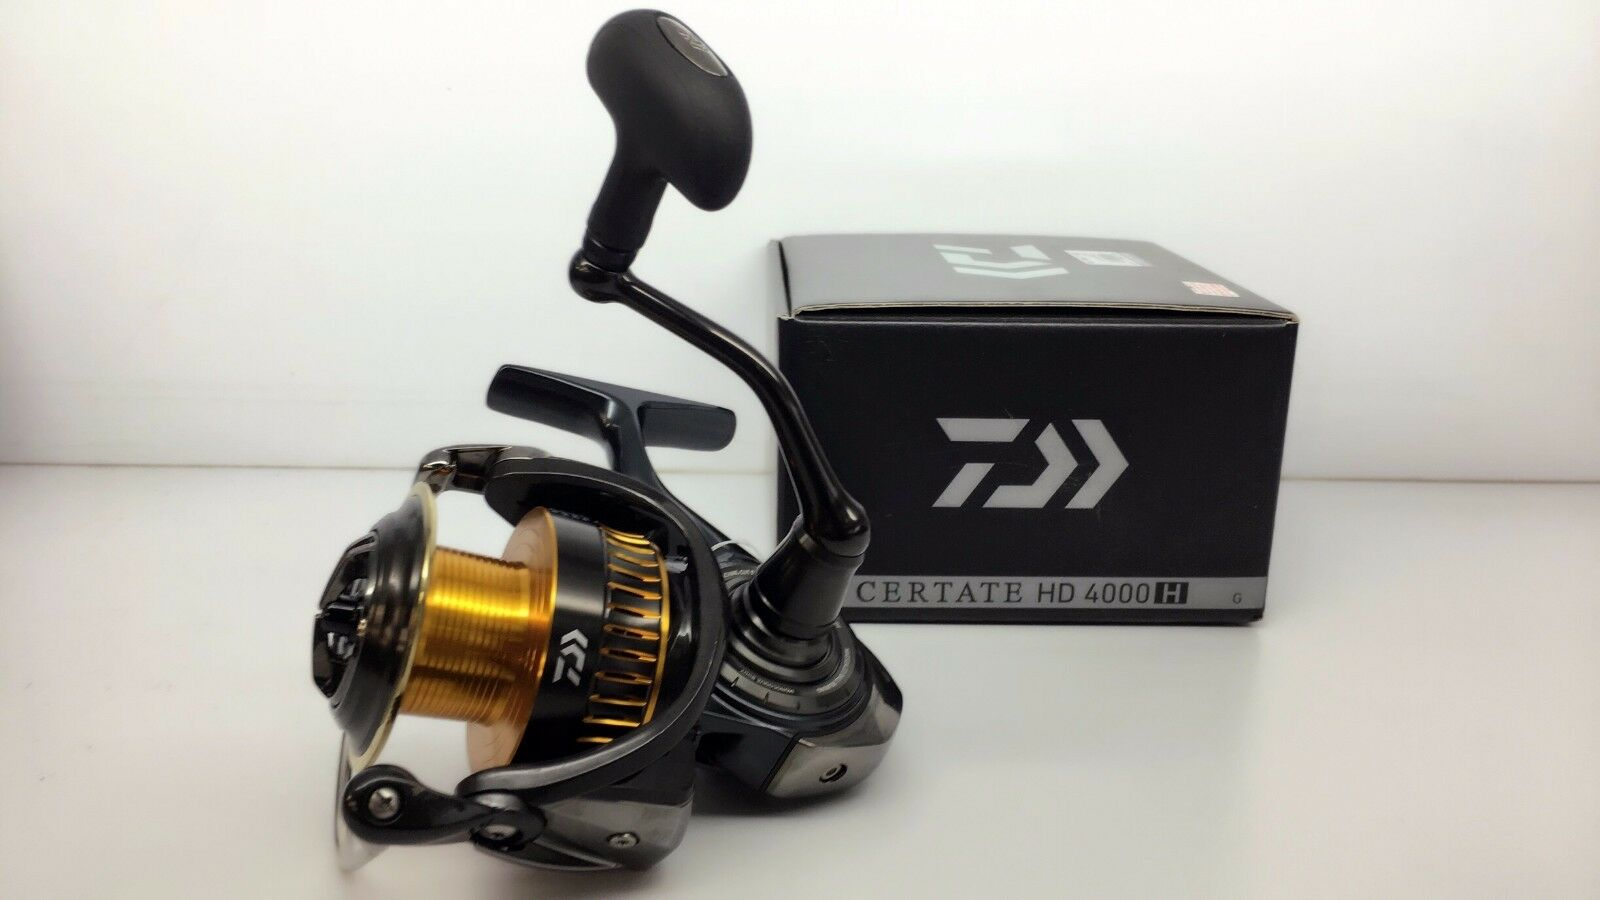 DAIWA Certate HD 4000H  FISHING  REEL 2017 Model 2 days Fedex priority to Usa  support wholesale retail